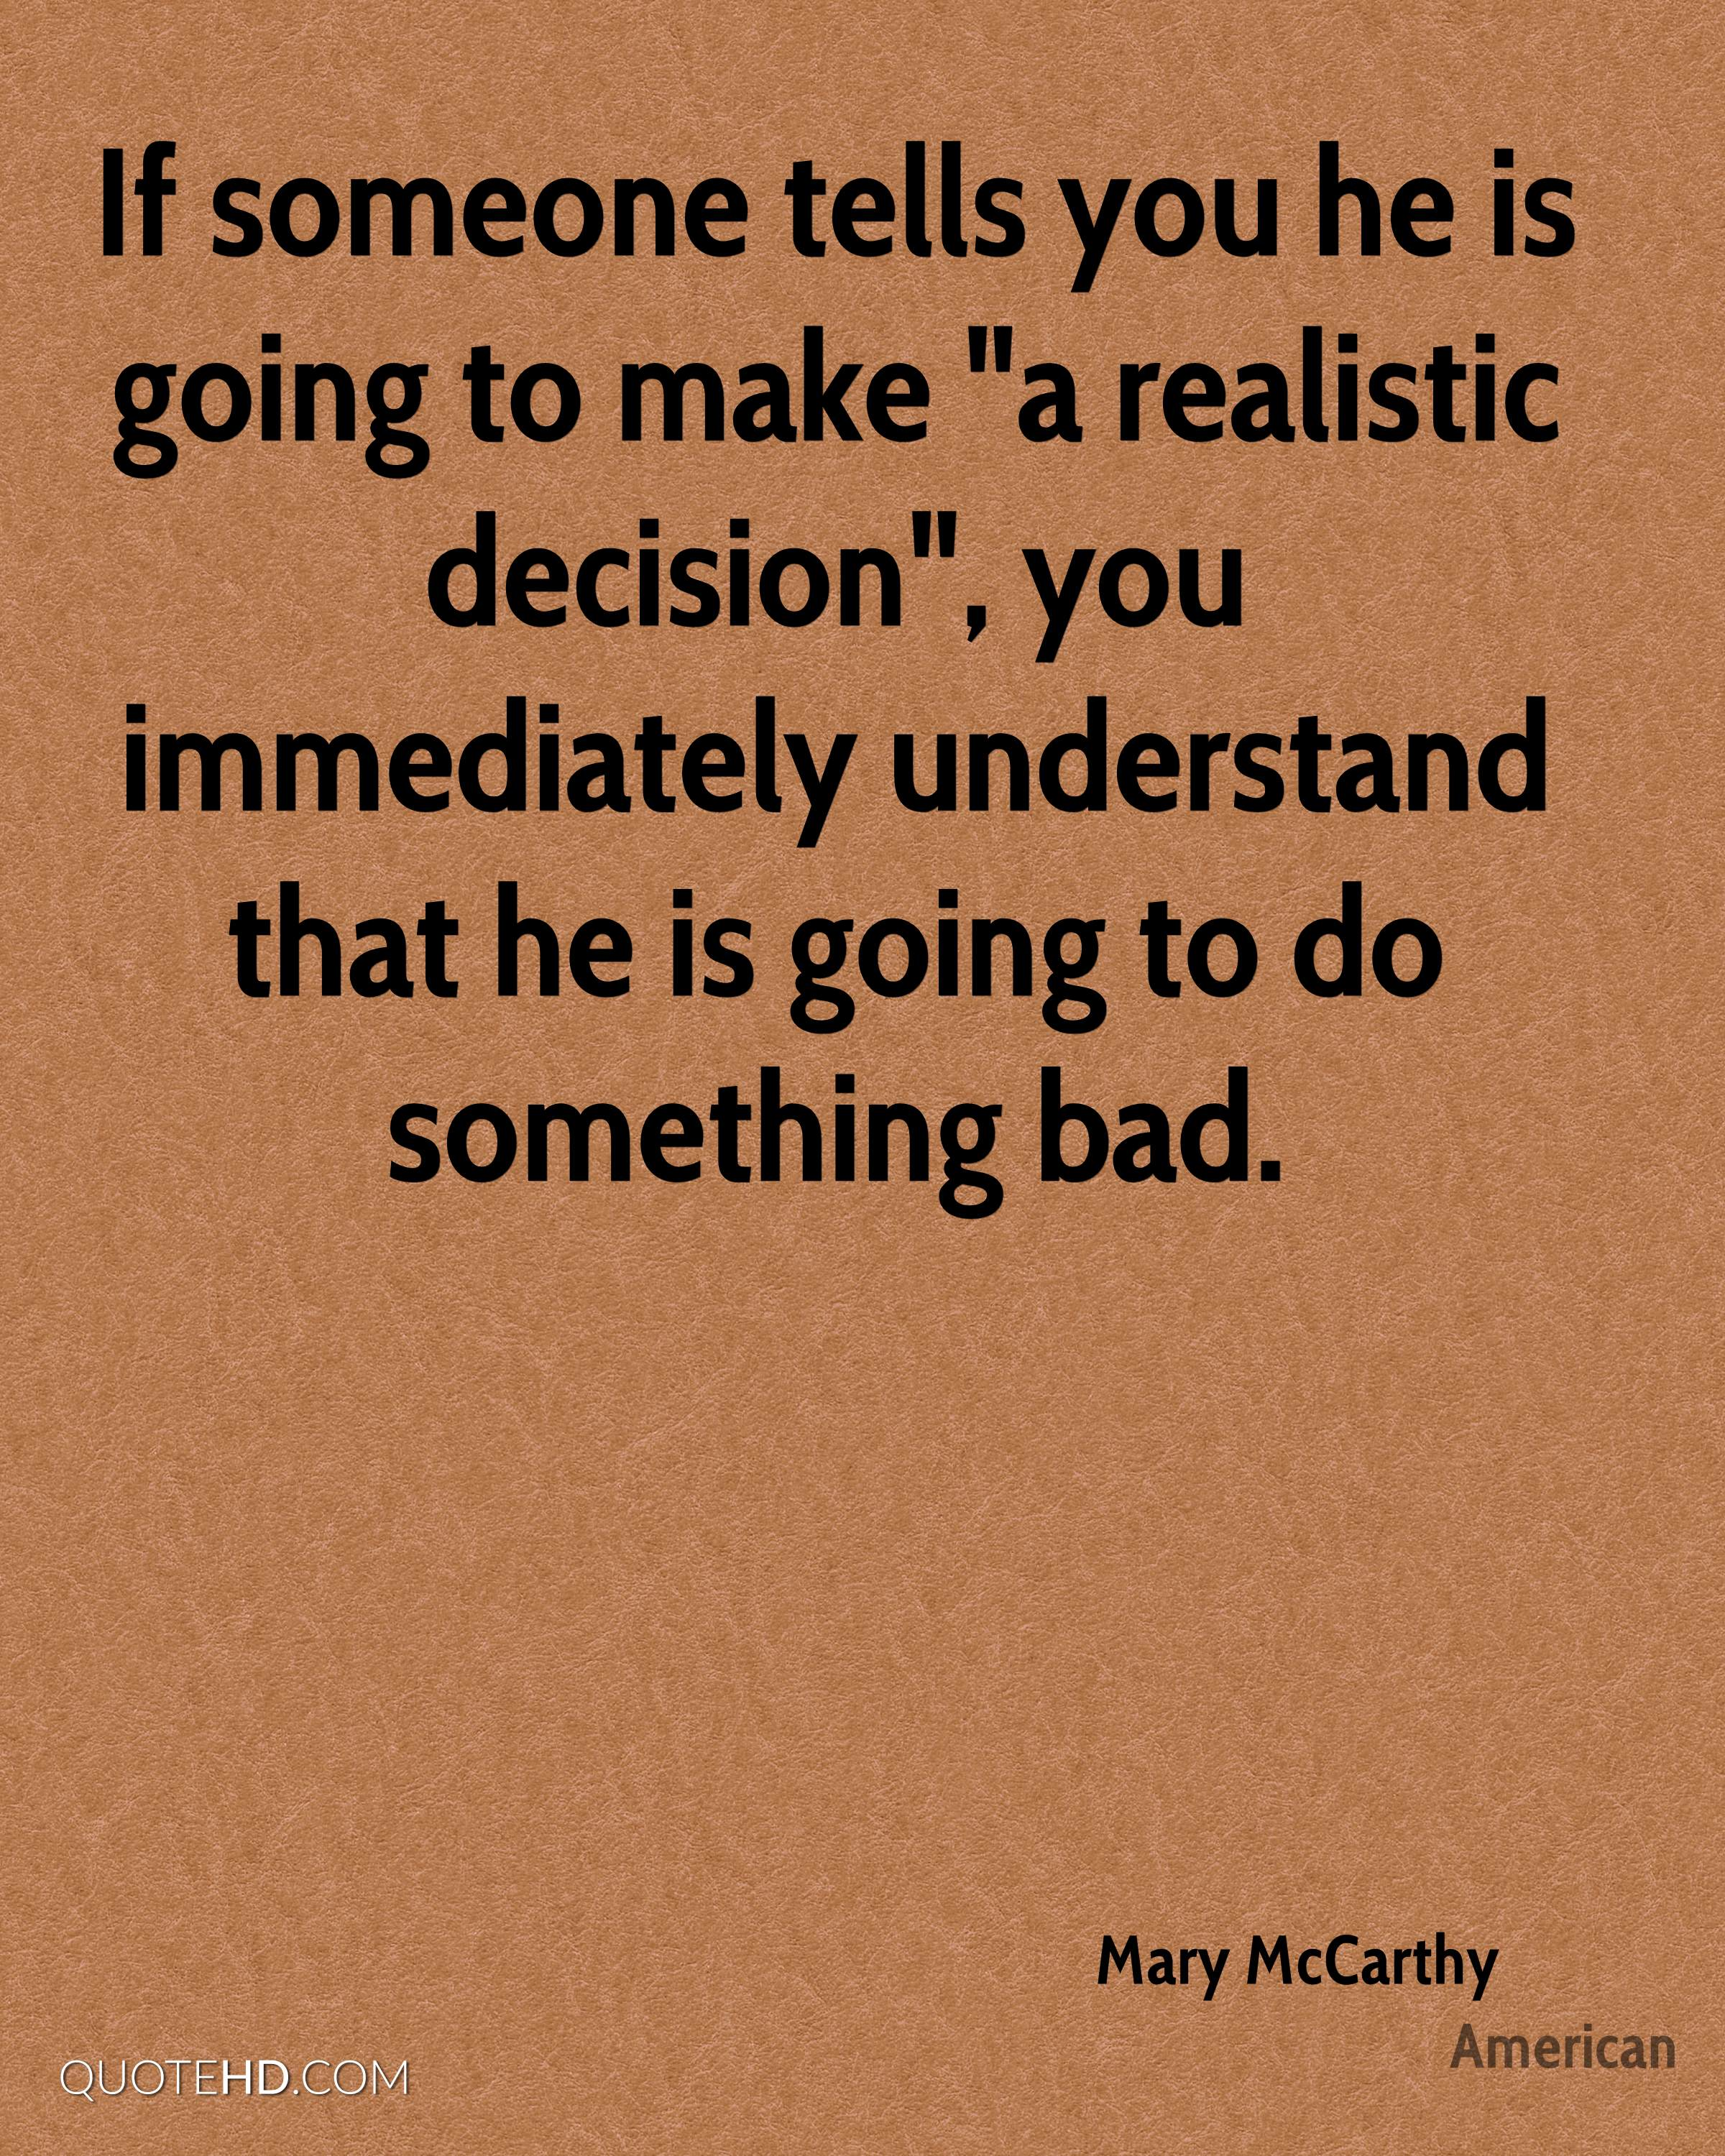 """If someone tells you he is going to make """"a realistic decision"""", you immediately understand that he is going to do something bad."""